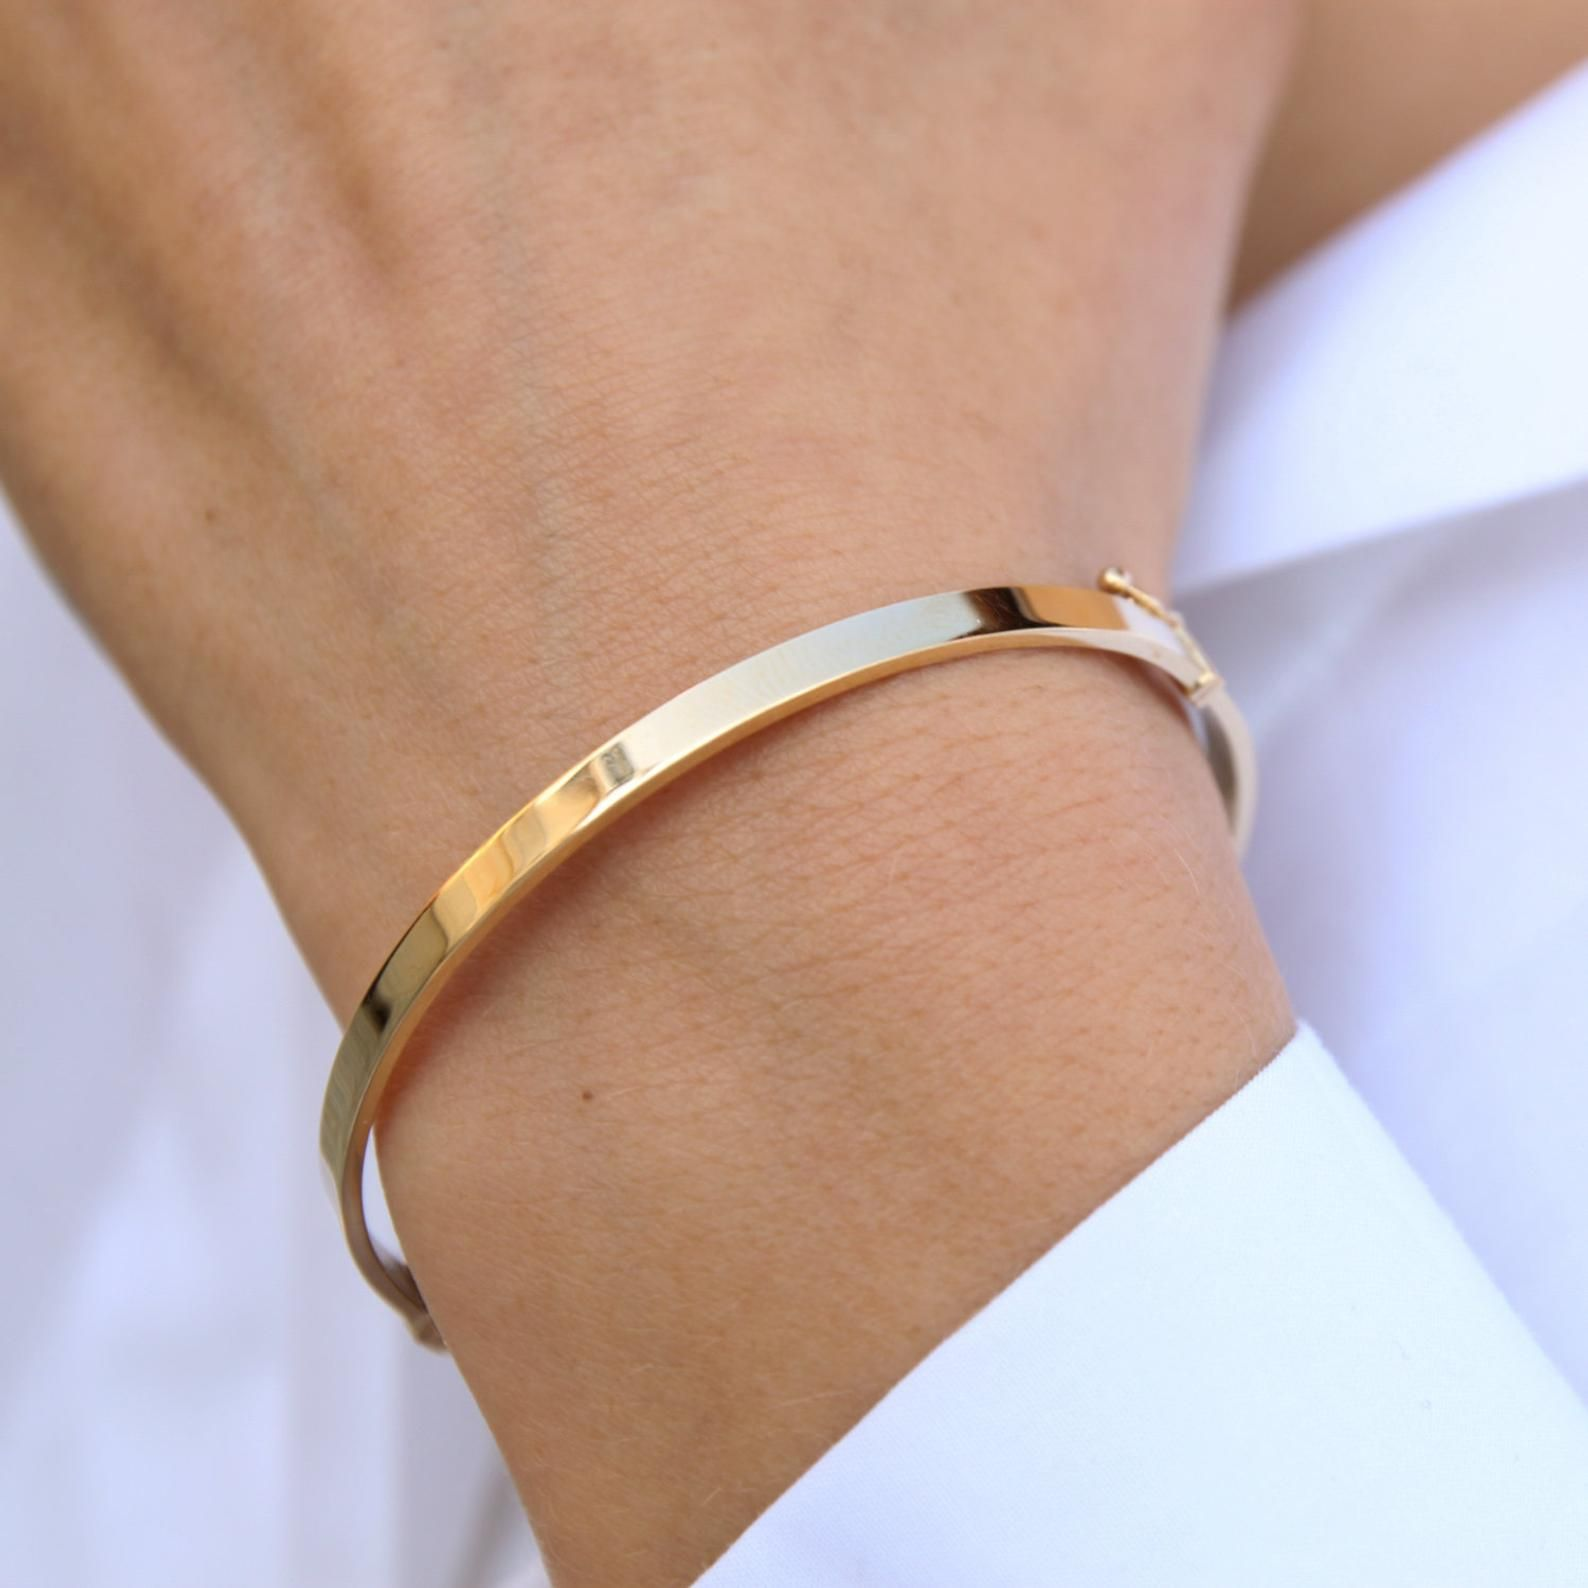 Plain Gold Bracelet Gold Bangle Bracelet Simple Real Gold Bangle